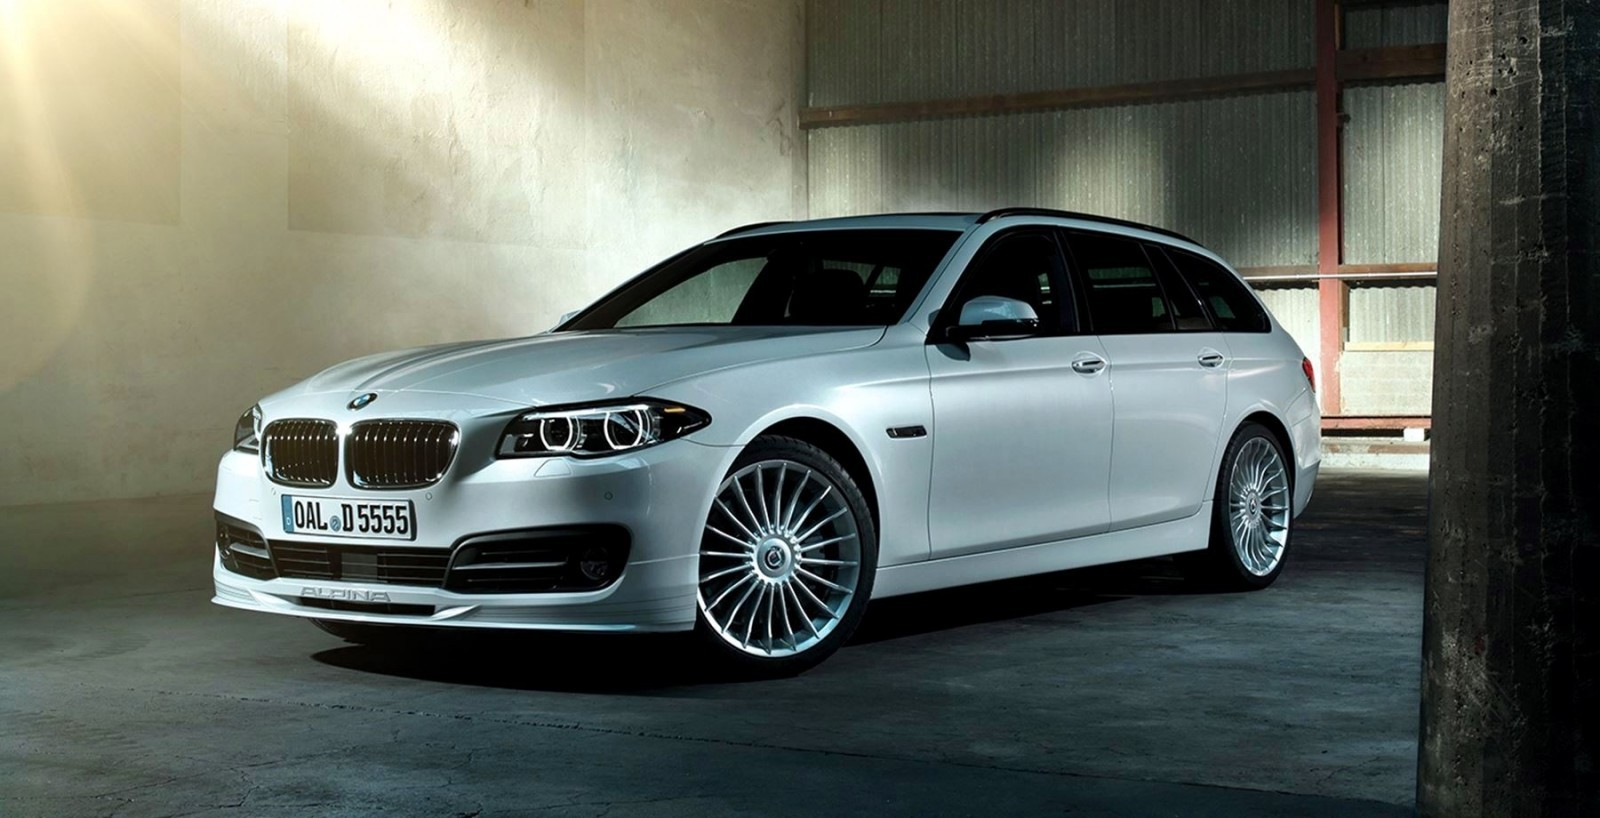 BMW_ALPINA_D5_BITURBO_07(1)